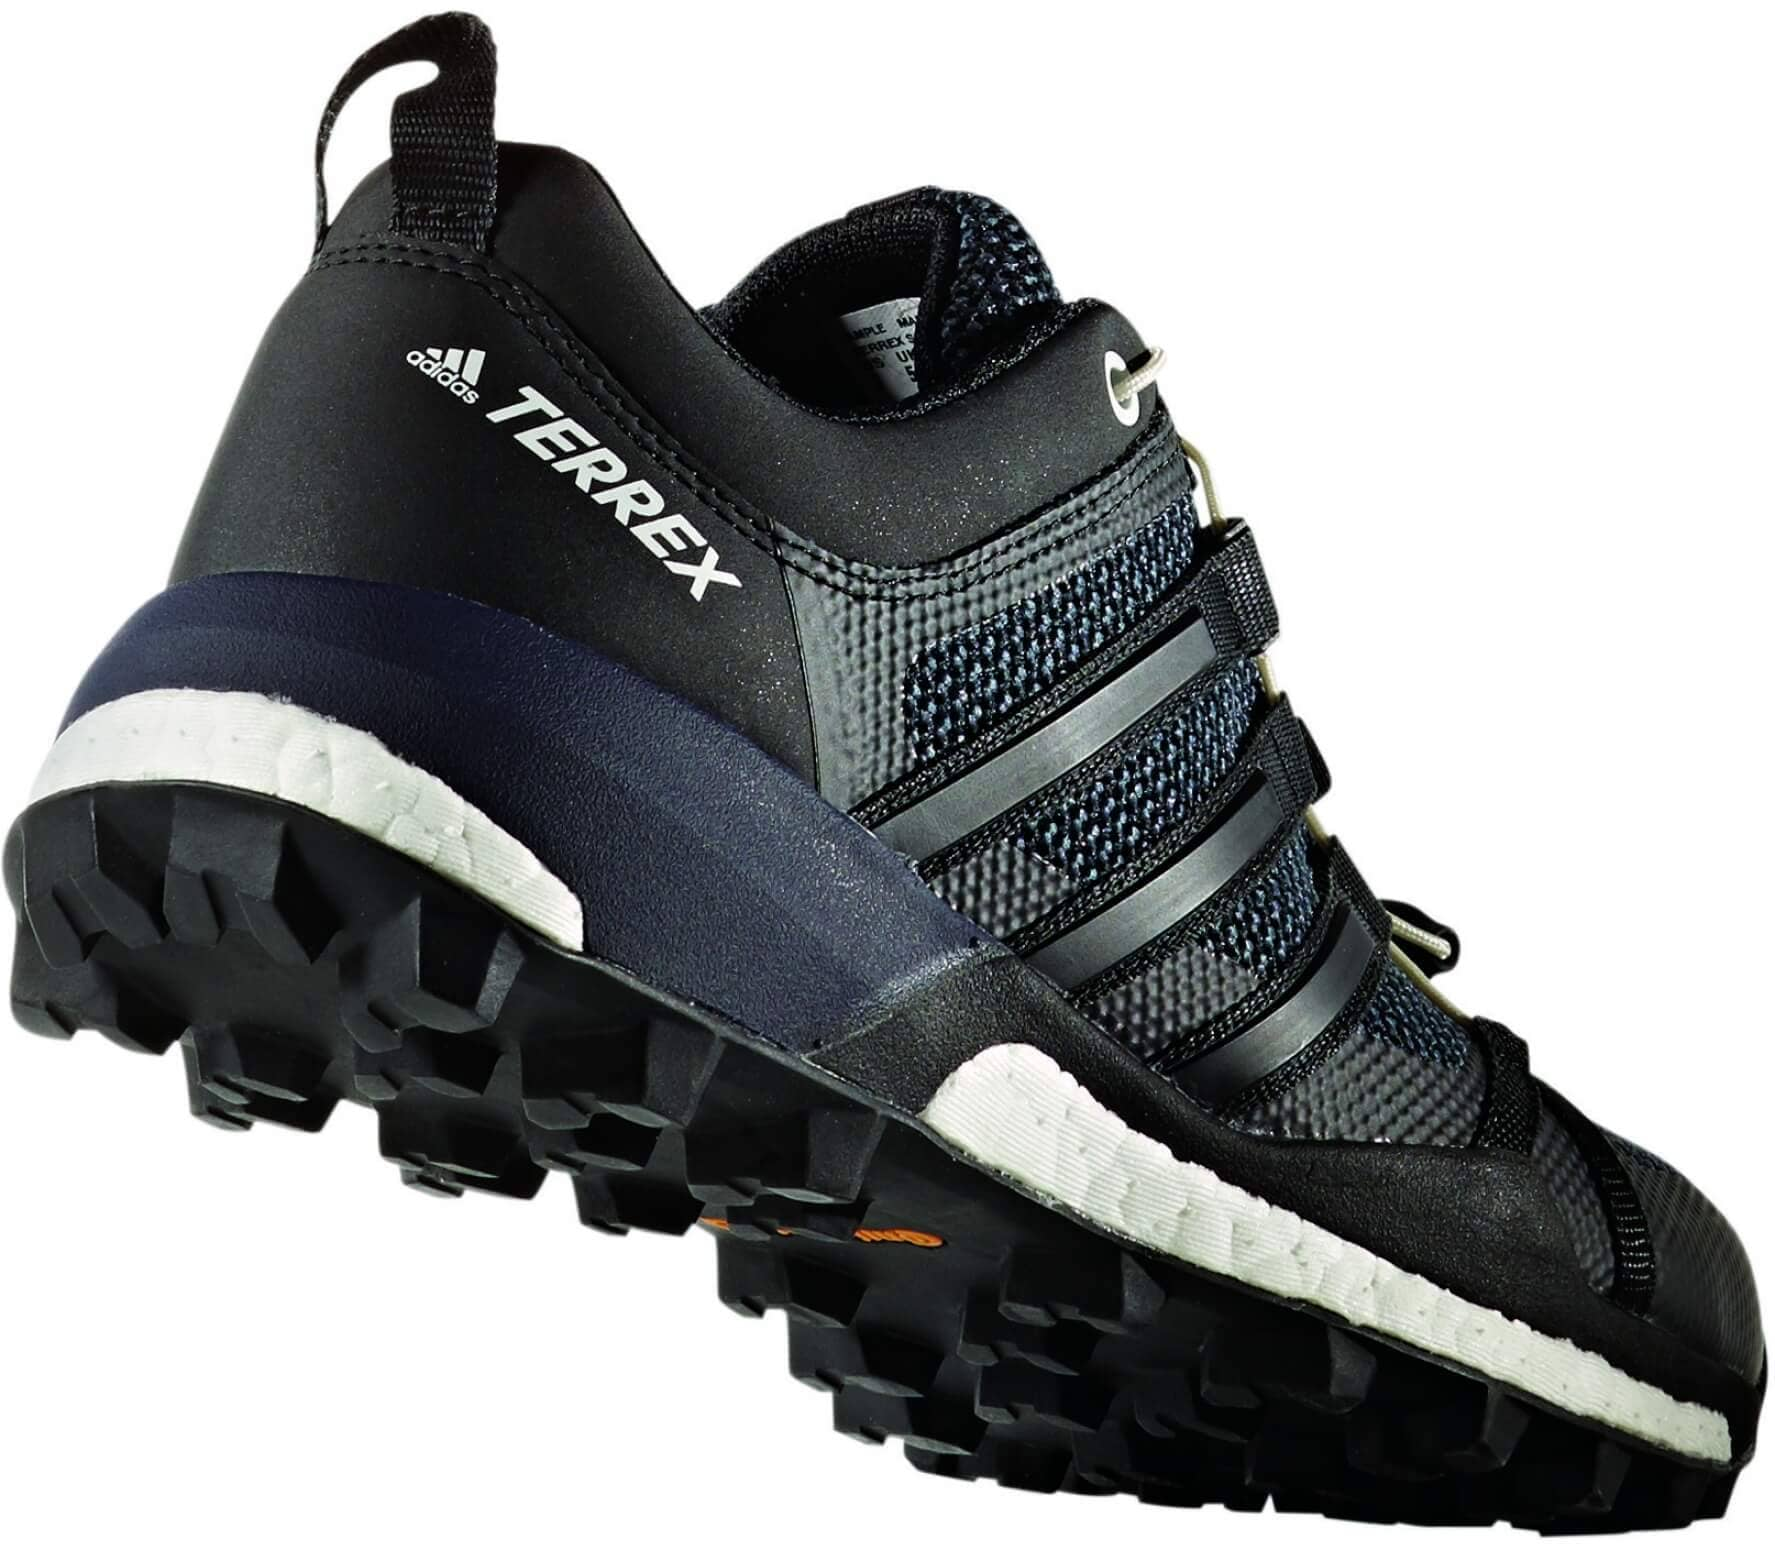 Adidas Outdoor Schuhe. Great Adidas Terrex Axr Outdoor